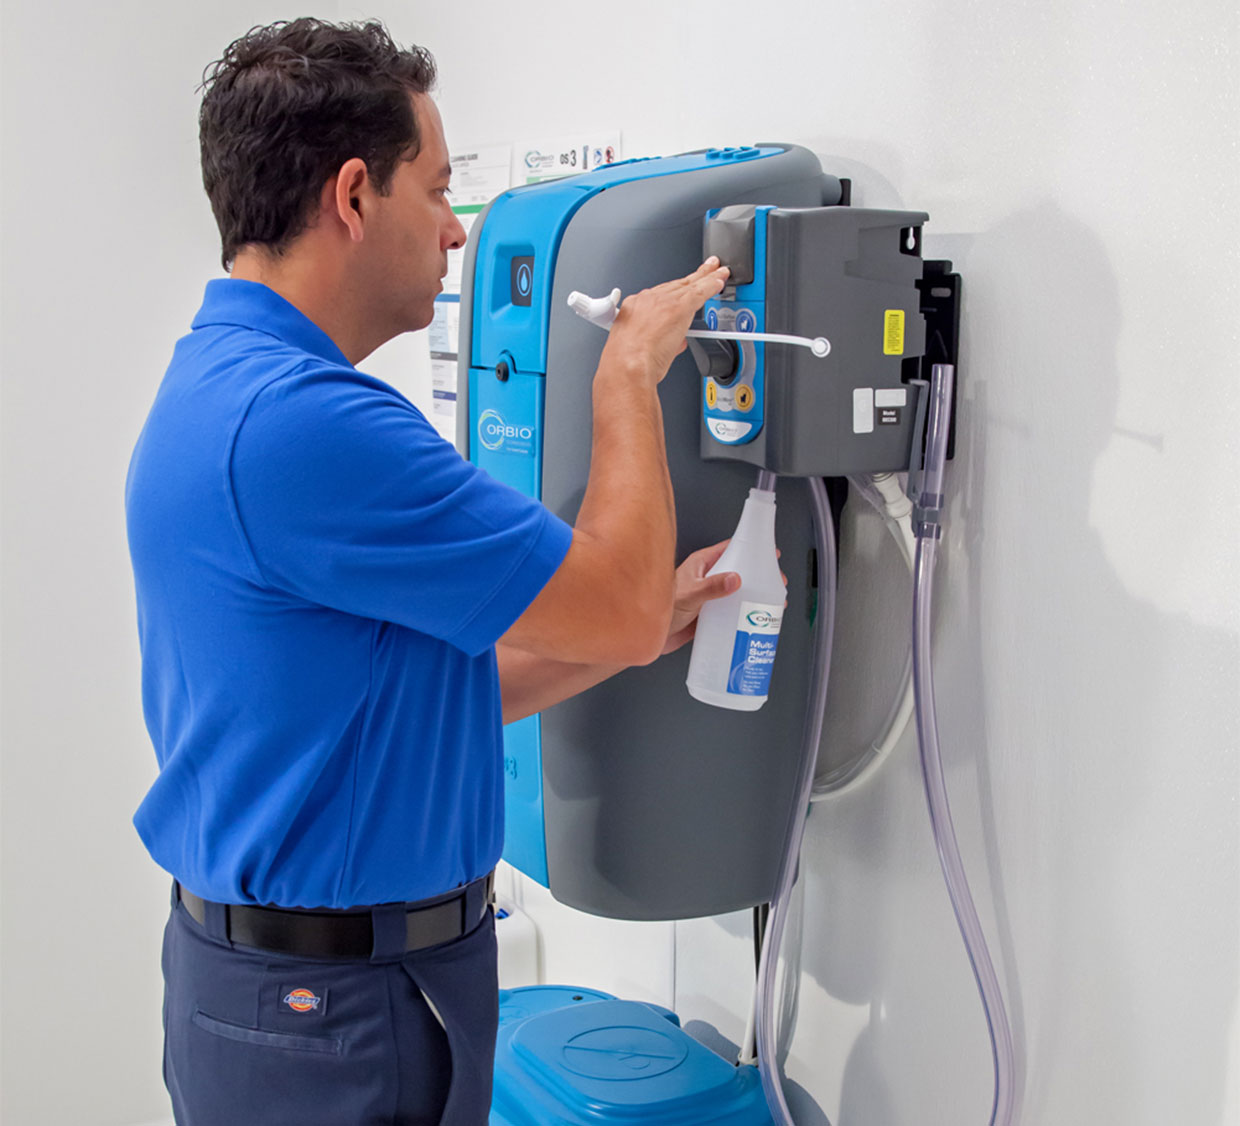 A worker fills a spray bottle with cleaning solution generated on site by the Orbio os3 system.